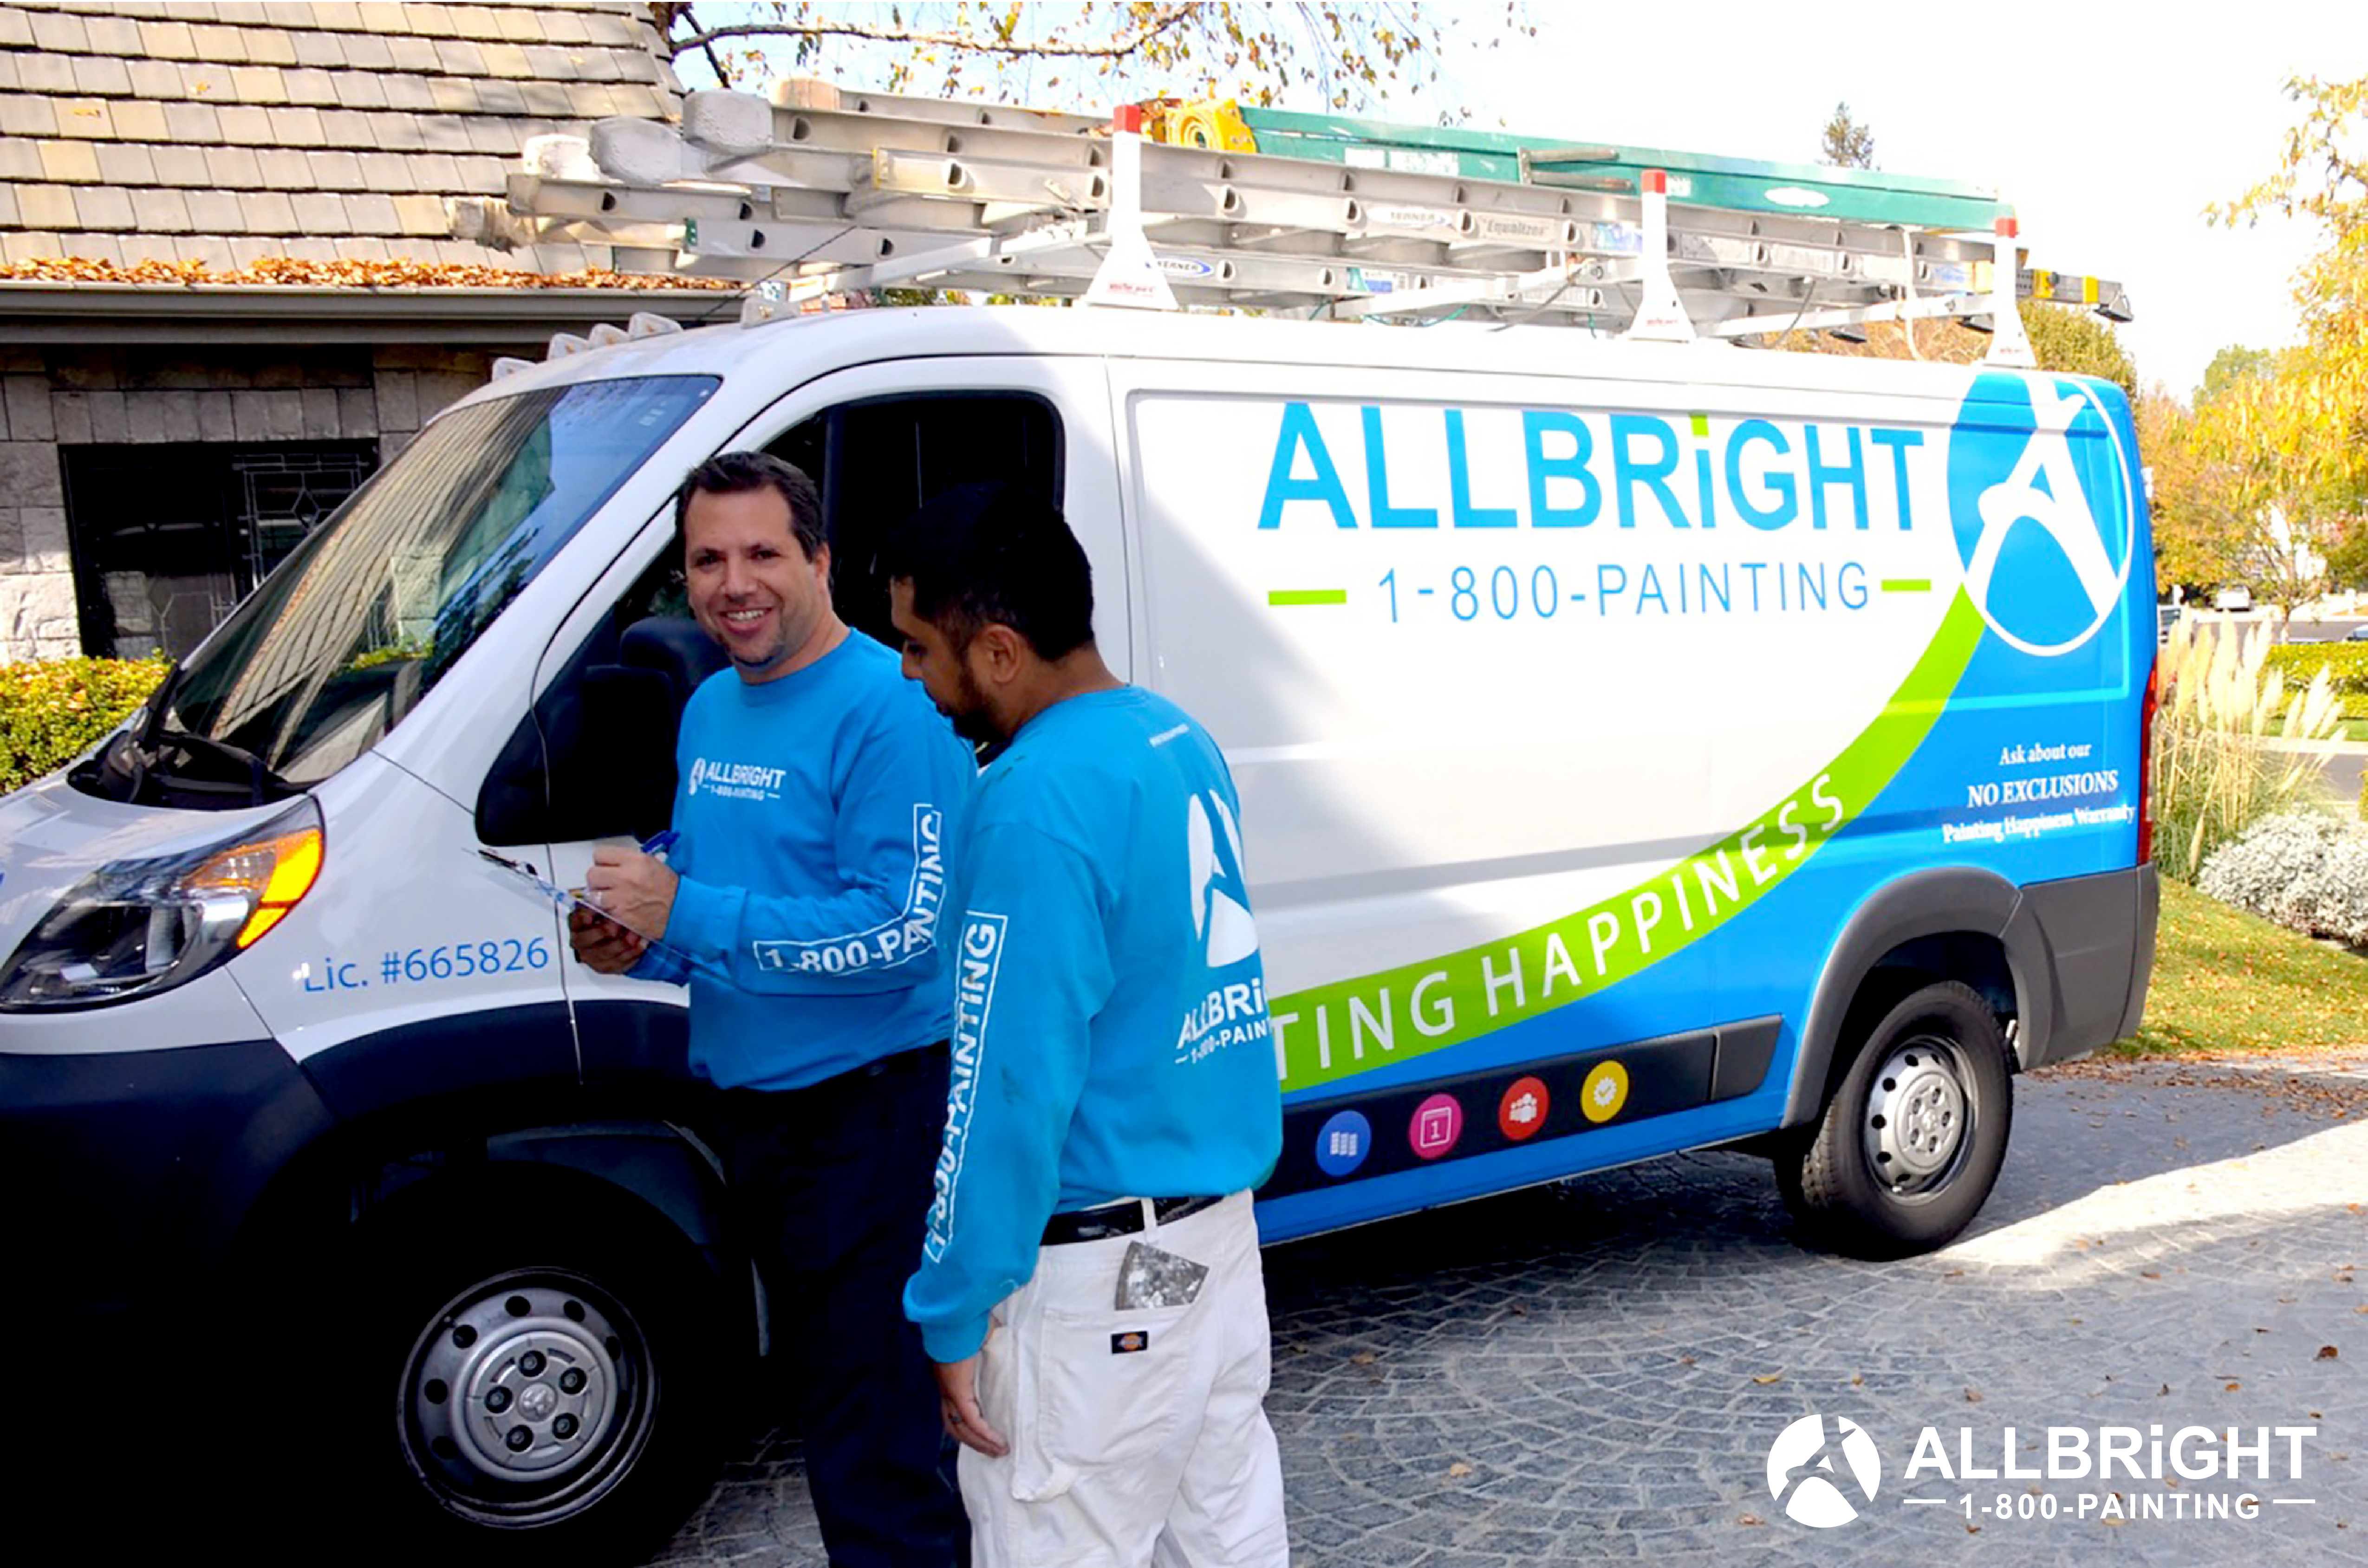 ALLBRIGHT 1-800-PAINTING